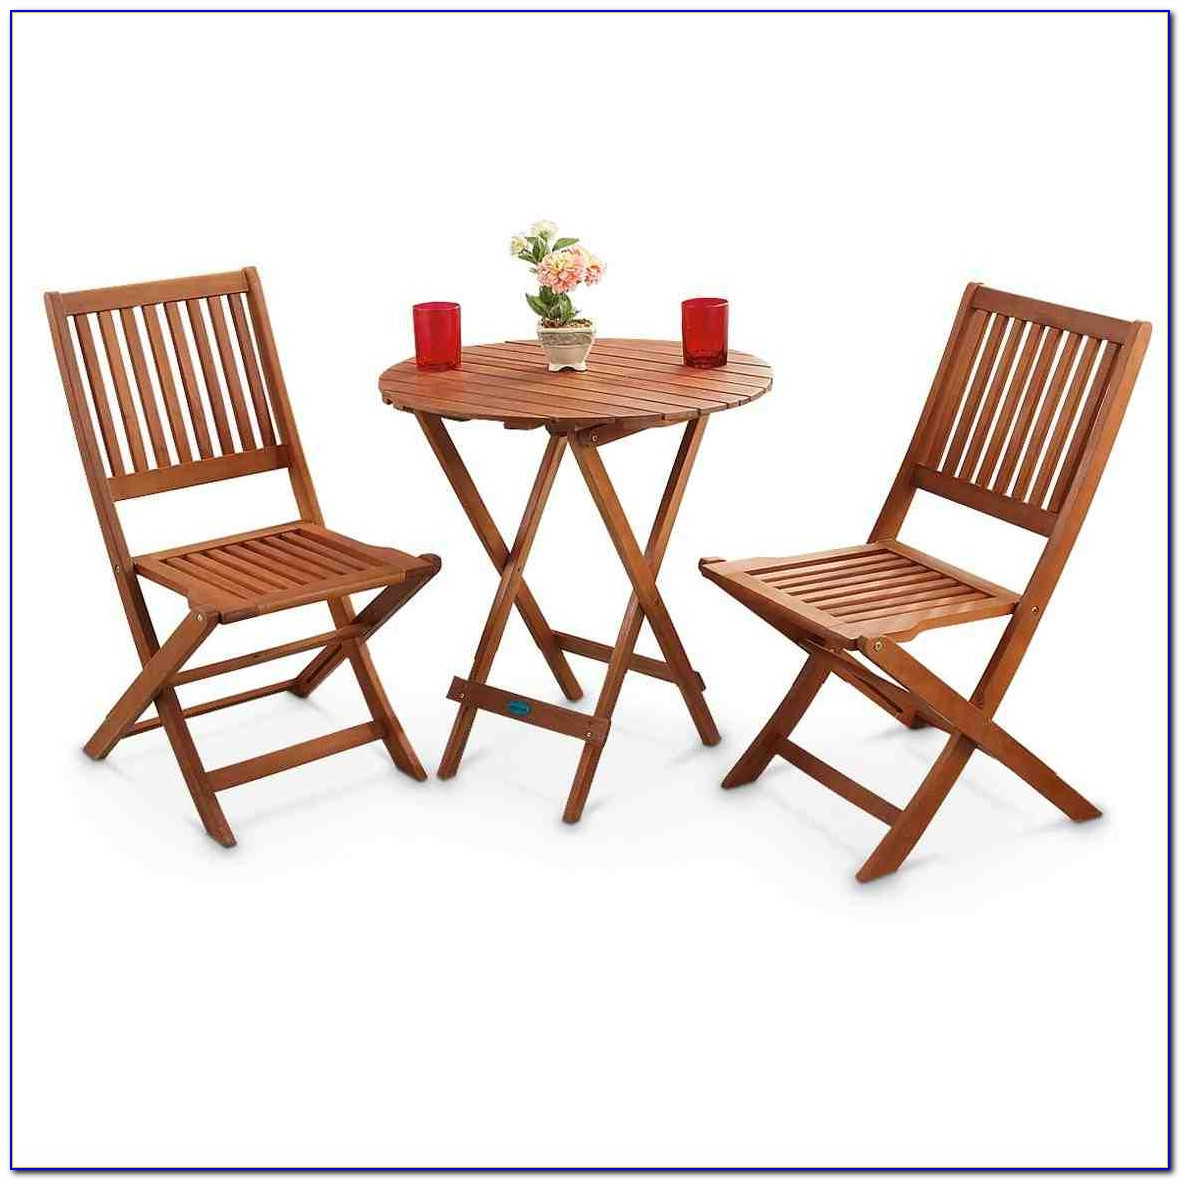 Outdoor Table And Chairs For Two